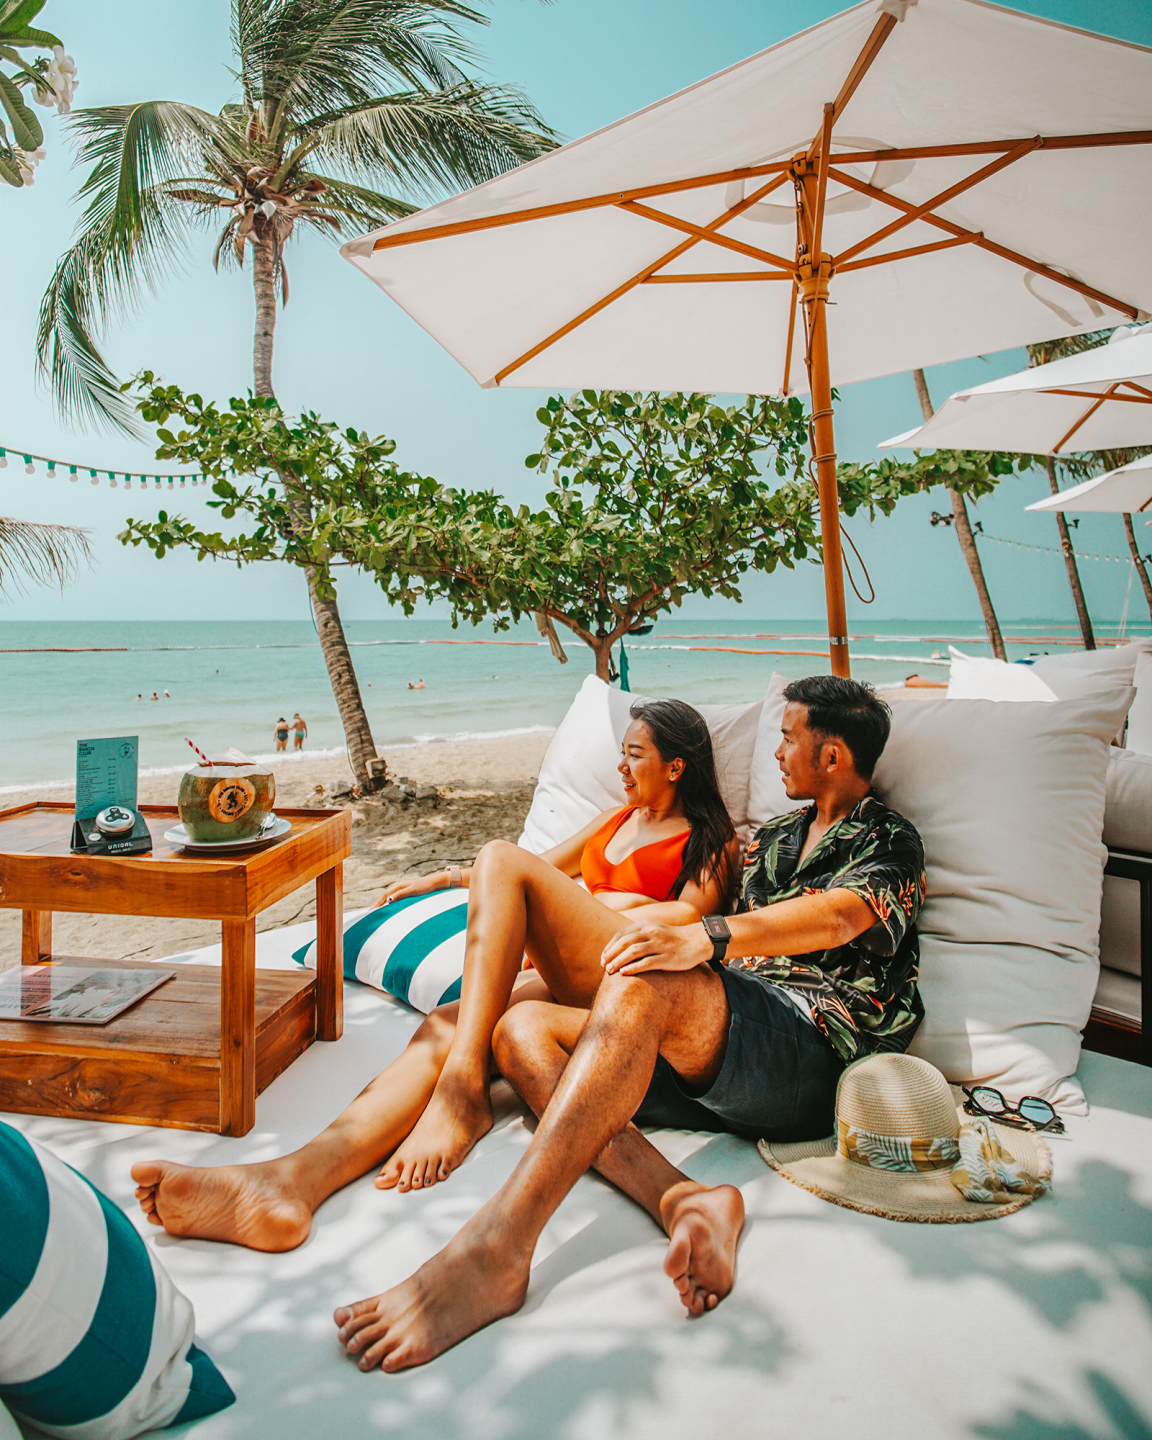 EAT AT THE BEACH CLUB AND GET A FREE NIGHT STAY